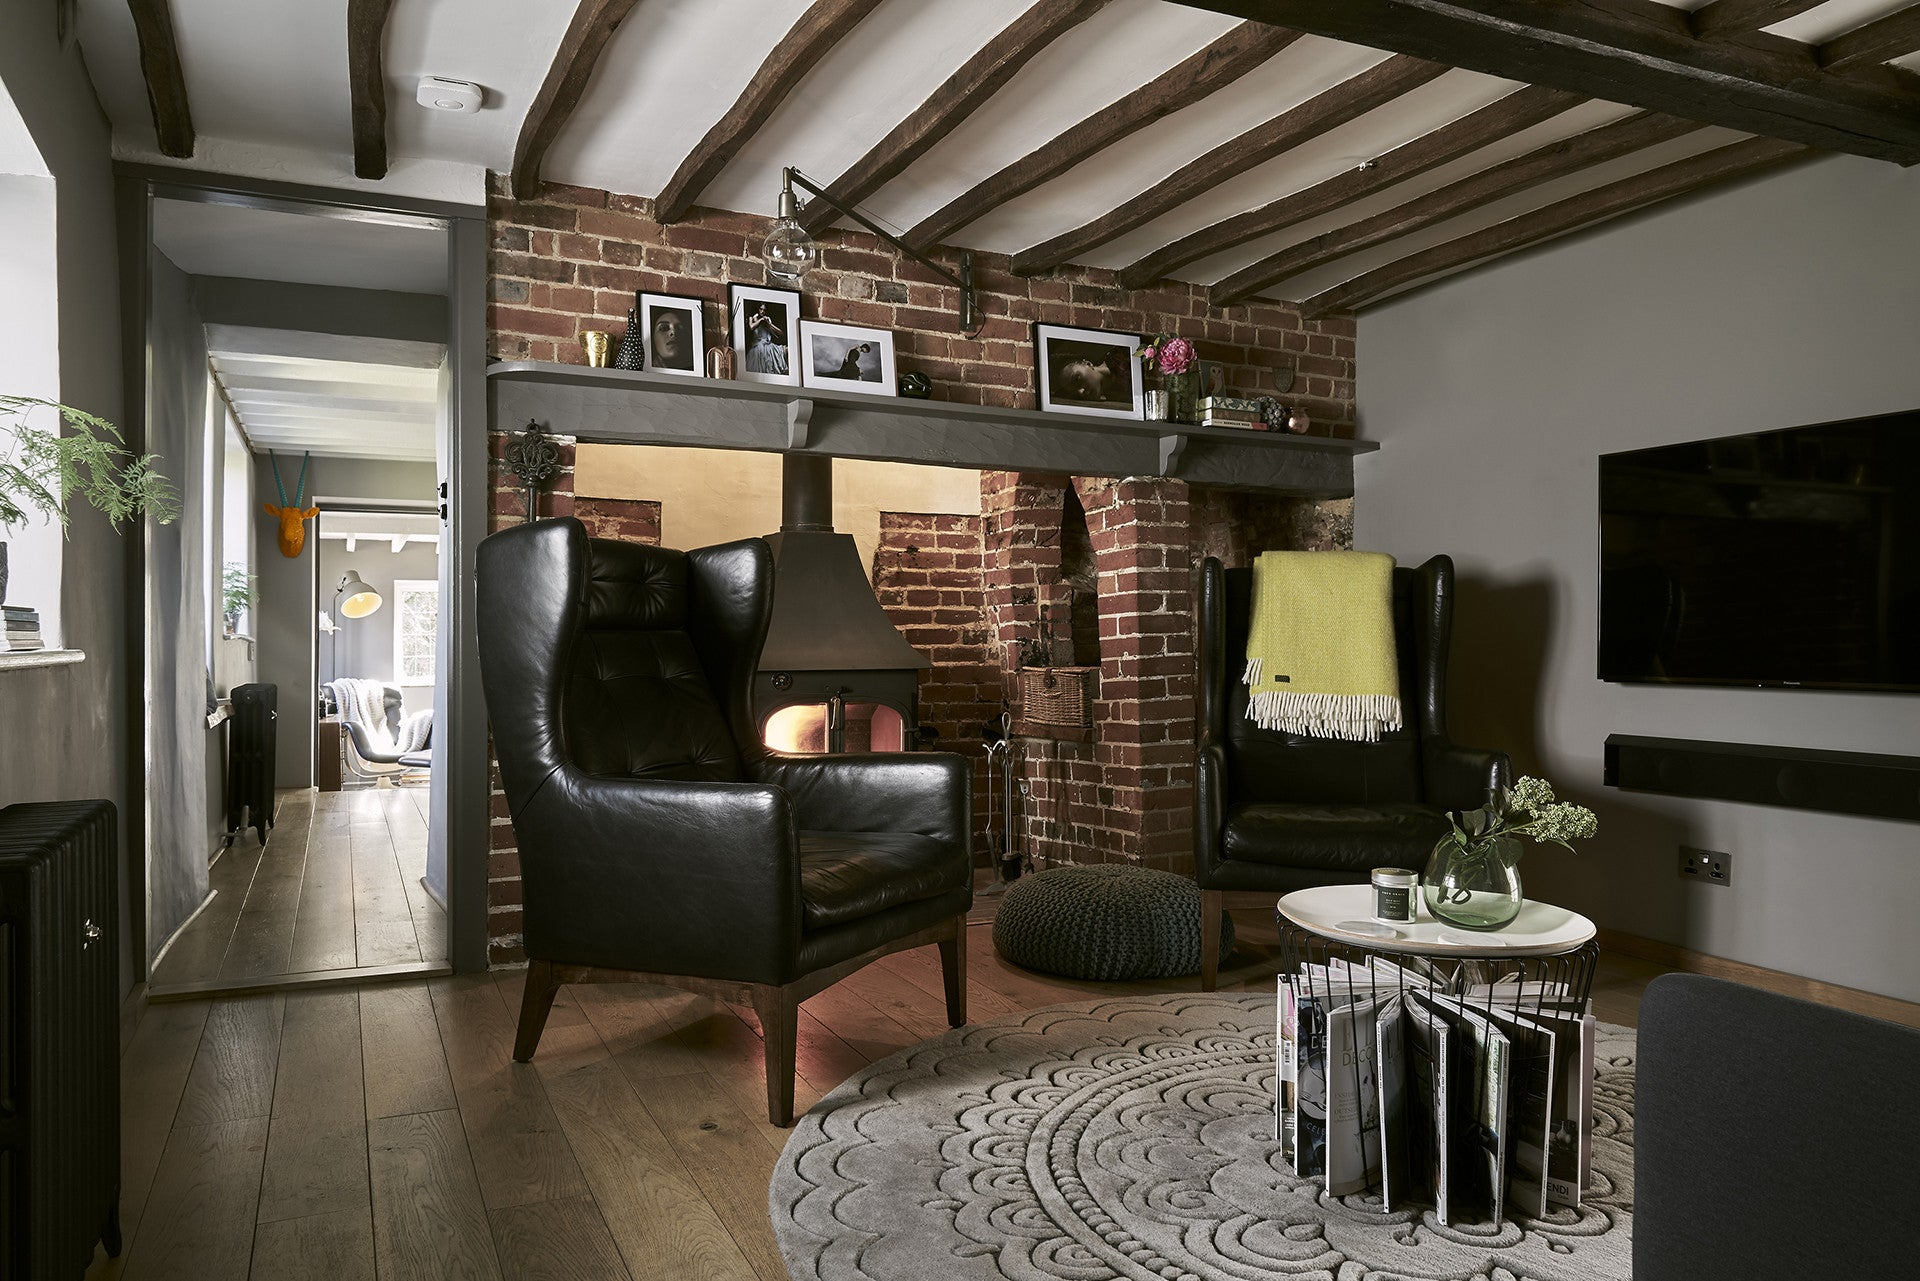 INTERIOR DESIGN, FFu0026E SOURCING, PROJECT MANAGEMENT OF RENOVATION, AND  INTERIOR STYLING